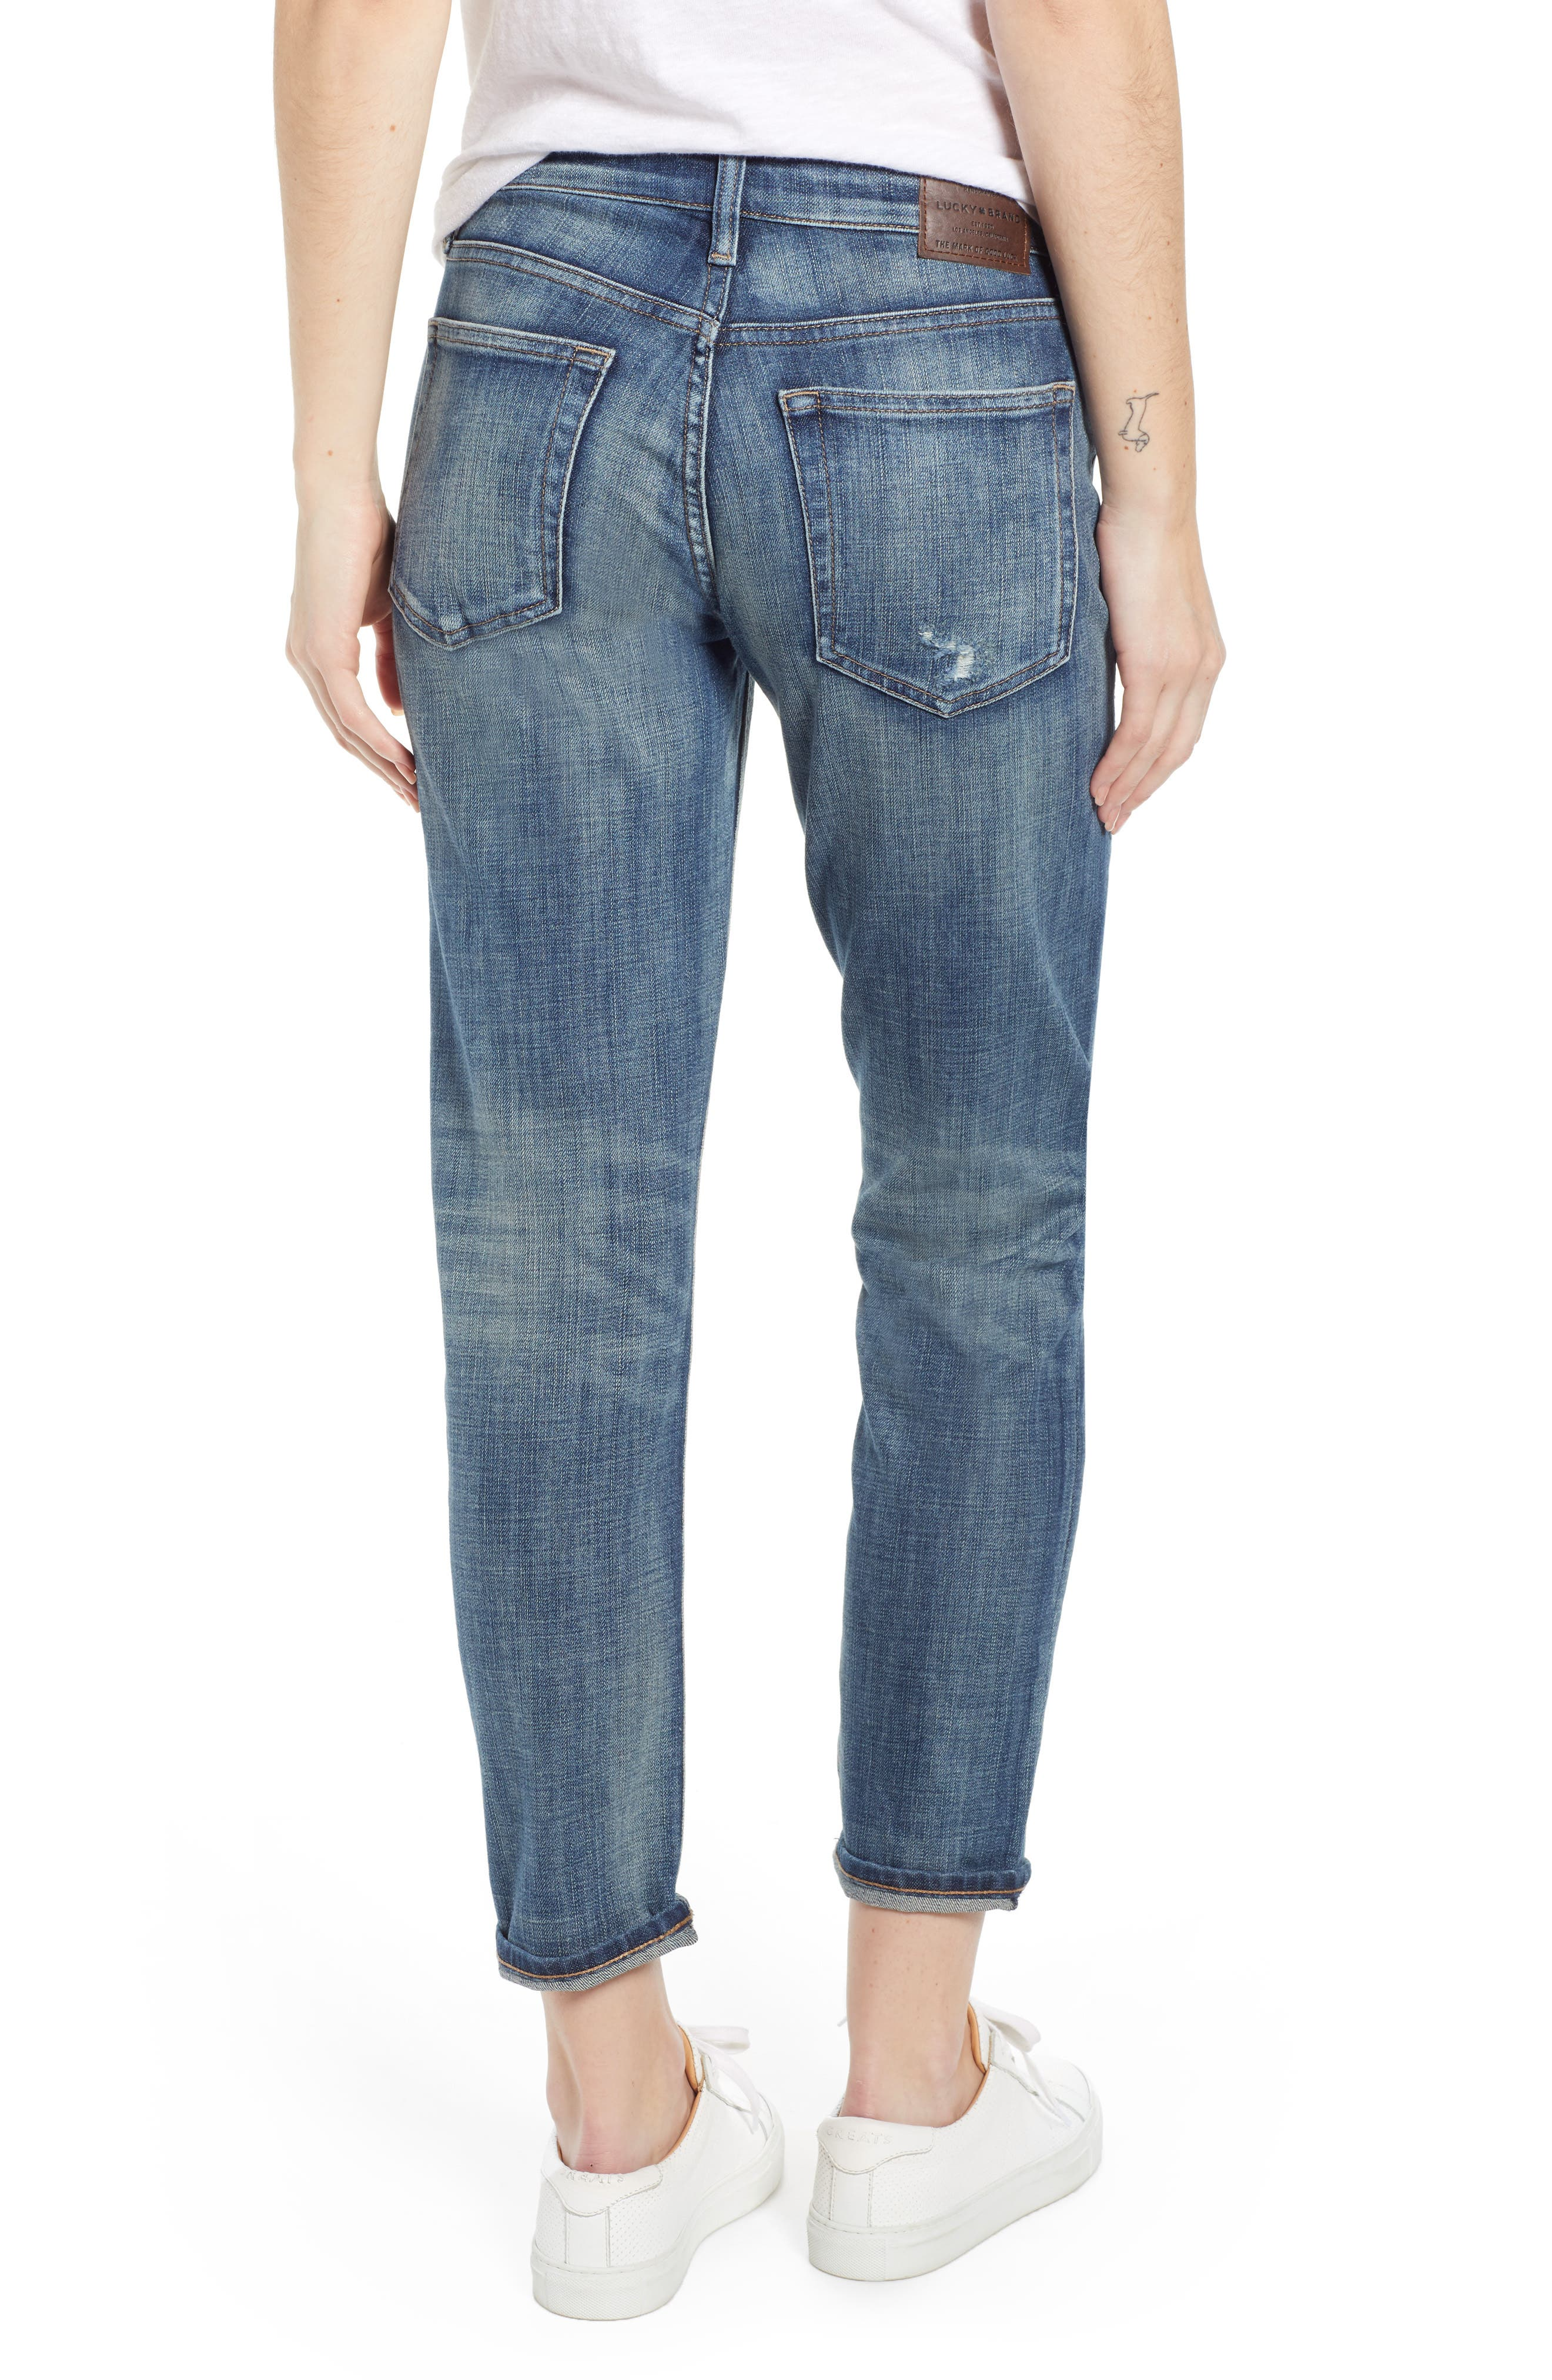 8ce59036b32 lucky jeans